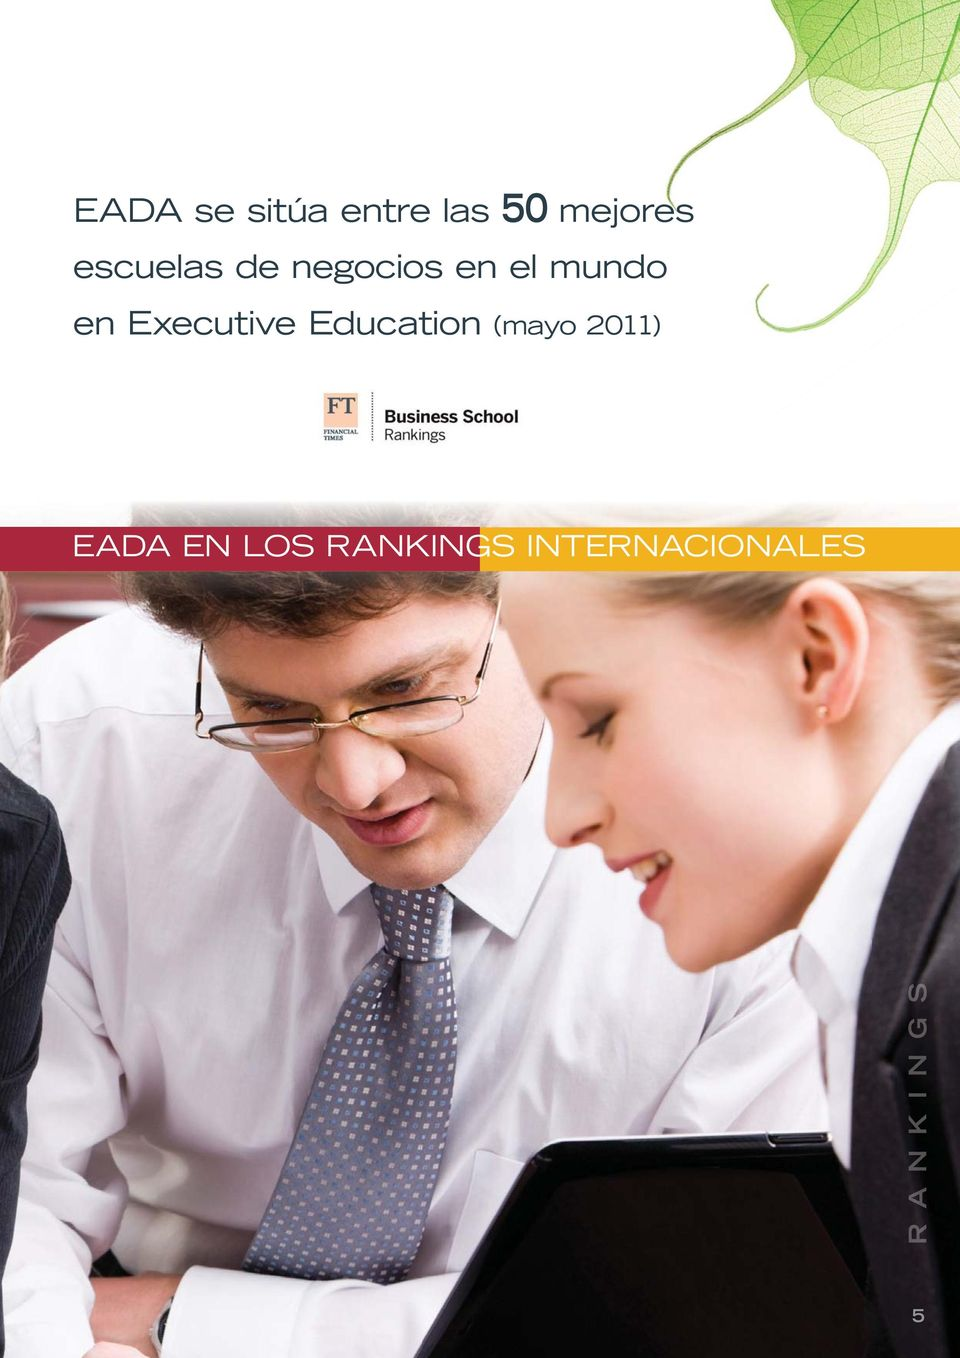 Executive Education (mayo 2011) EADA EN